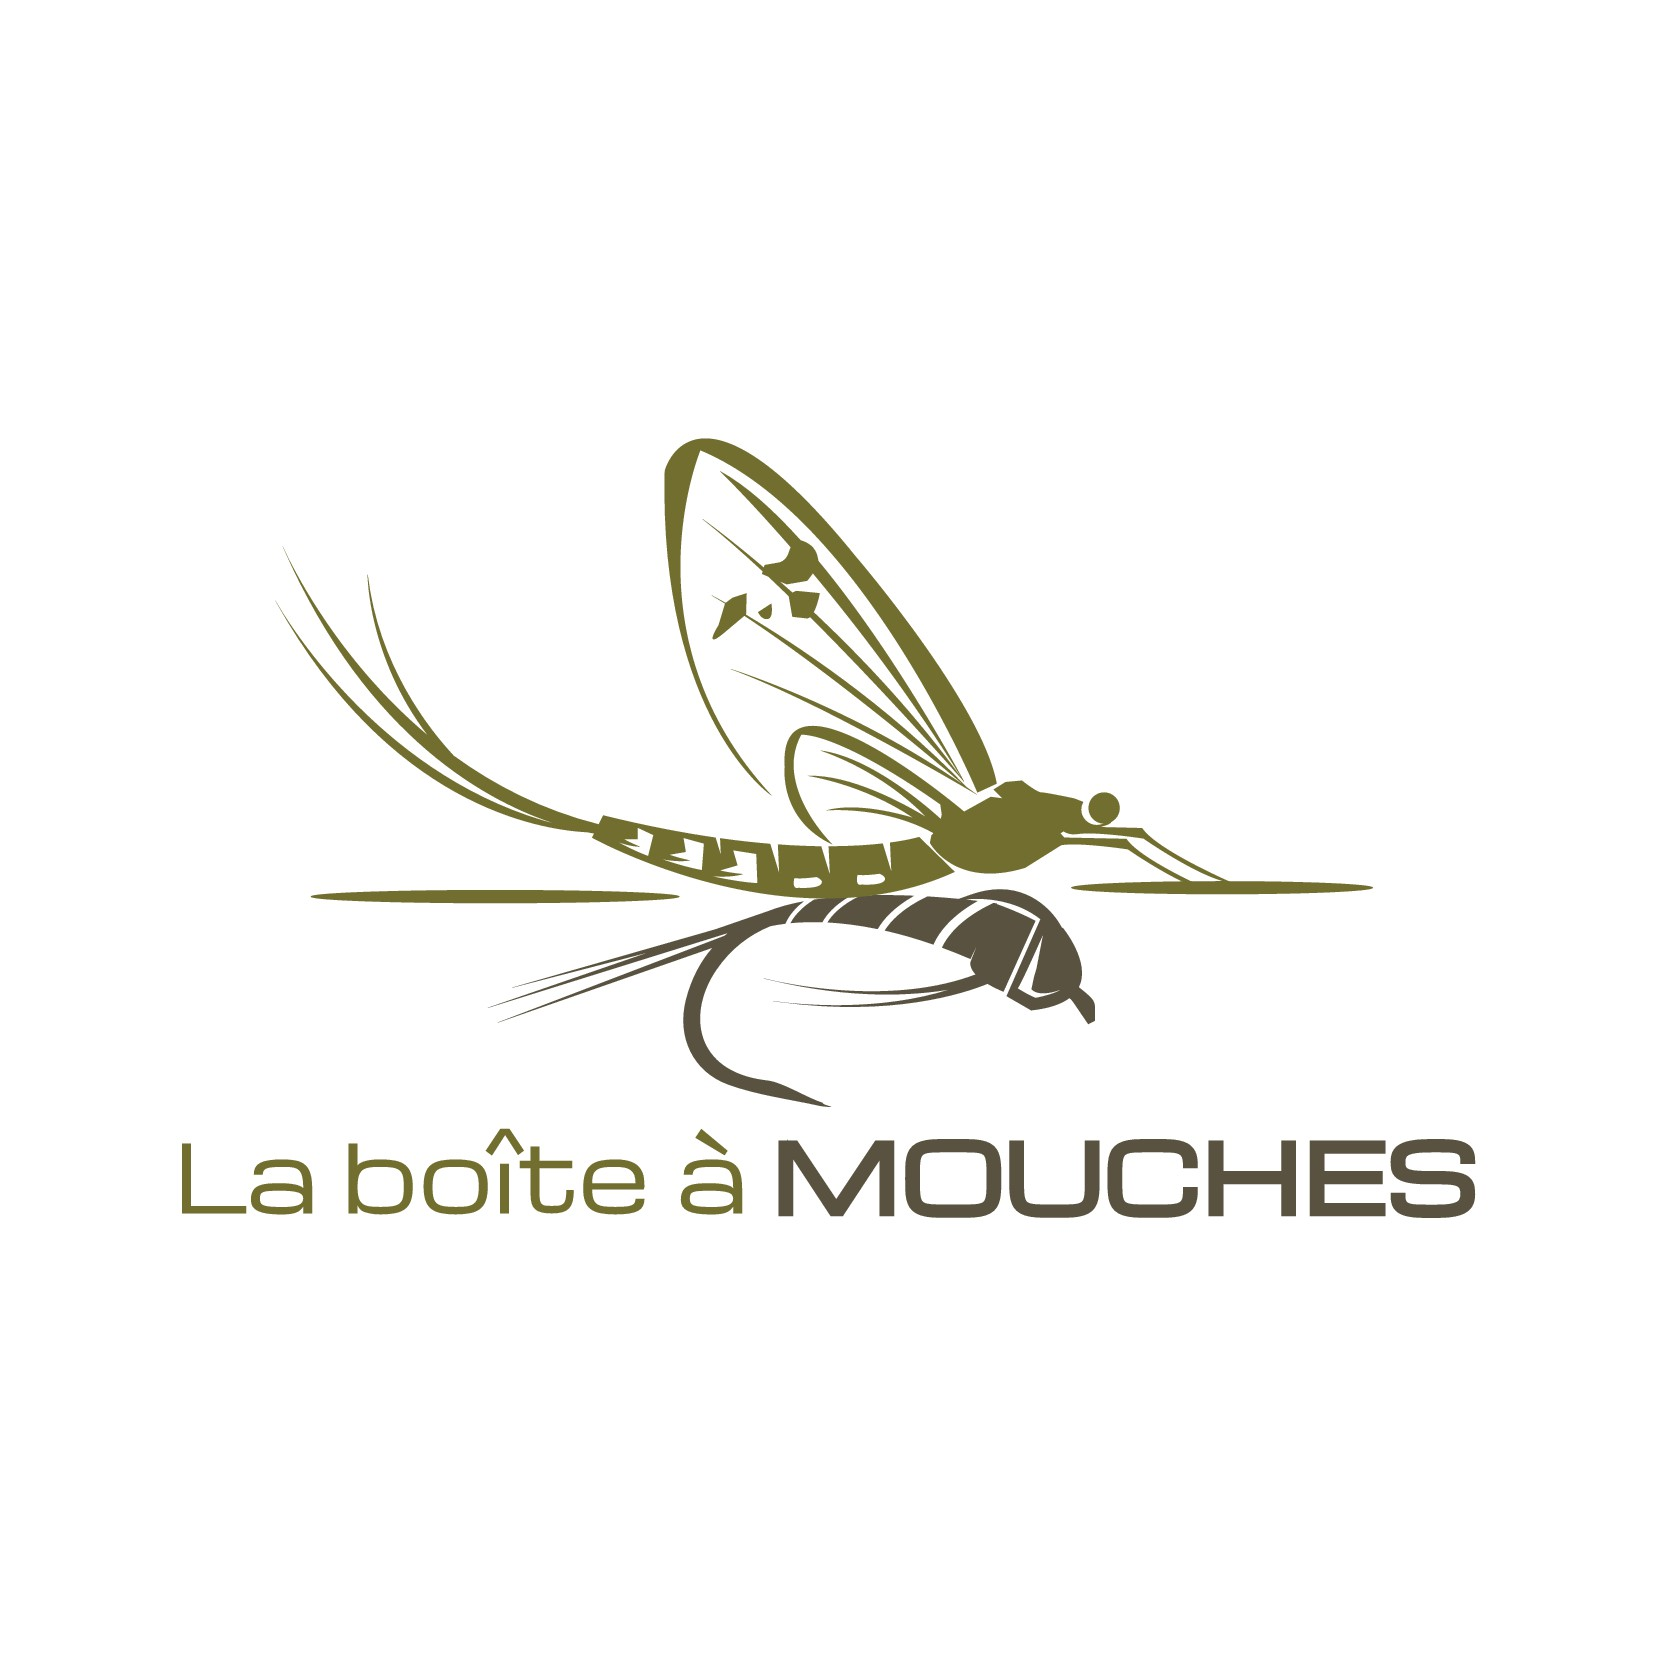 LOGO design for website specialized  in the sale of fishing fly tackle